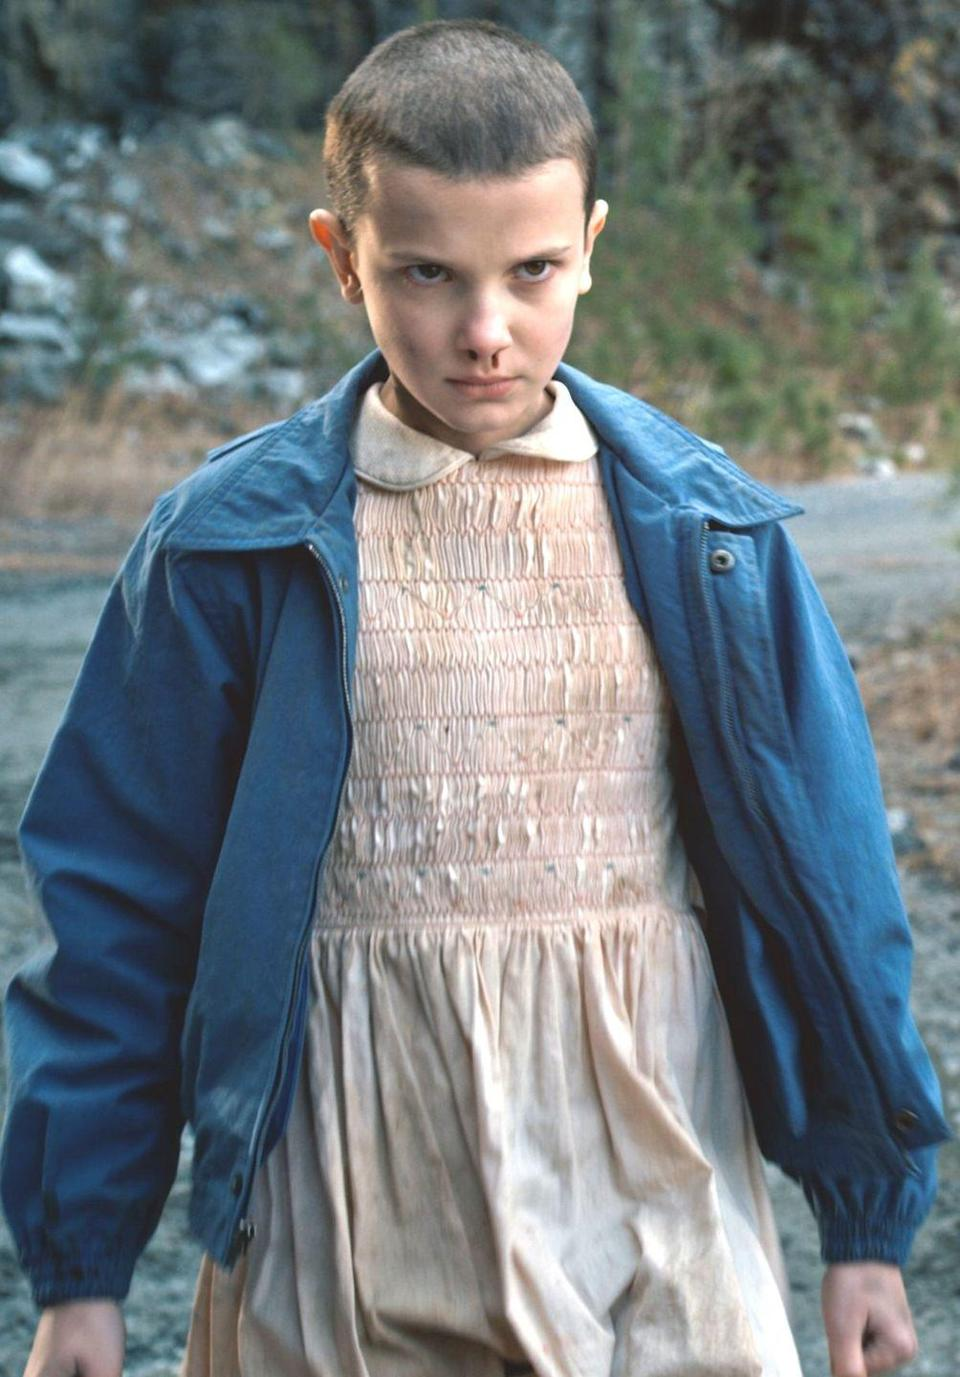 """<p><em>Stranger Things</em> fans will love this Eleven costume. Just pair a pink dress with a blue jacket and accessorize with a drop of fake blood and an Eggo box.</p><p><a class=""""link rapid-noclick-resp"""" href=""""https://www.amazon.com/Oulooy-Womens-Collar-Costume-X-Small/dp/B07FKCYJL3?tag=syn-yahoo-20&ascsubtag=%5Bartid%7C10070.g.490%5Bsrc%7Cyahoo-us"""" rel=""""nofollow noopener"""" target=""""_blank"""" data-ylk=""""slk:SHOP PINK DRESSES"""">SHOP PINK DRESSES</a> </p>"""